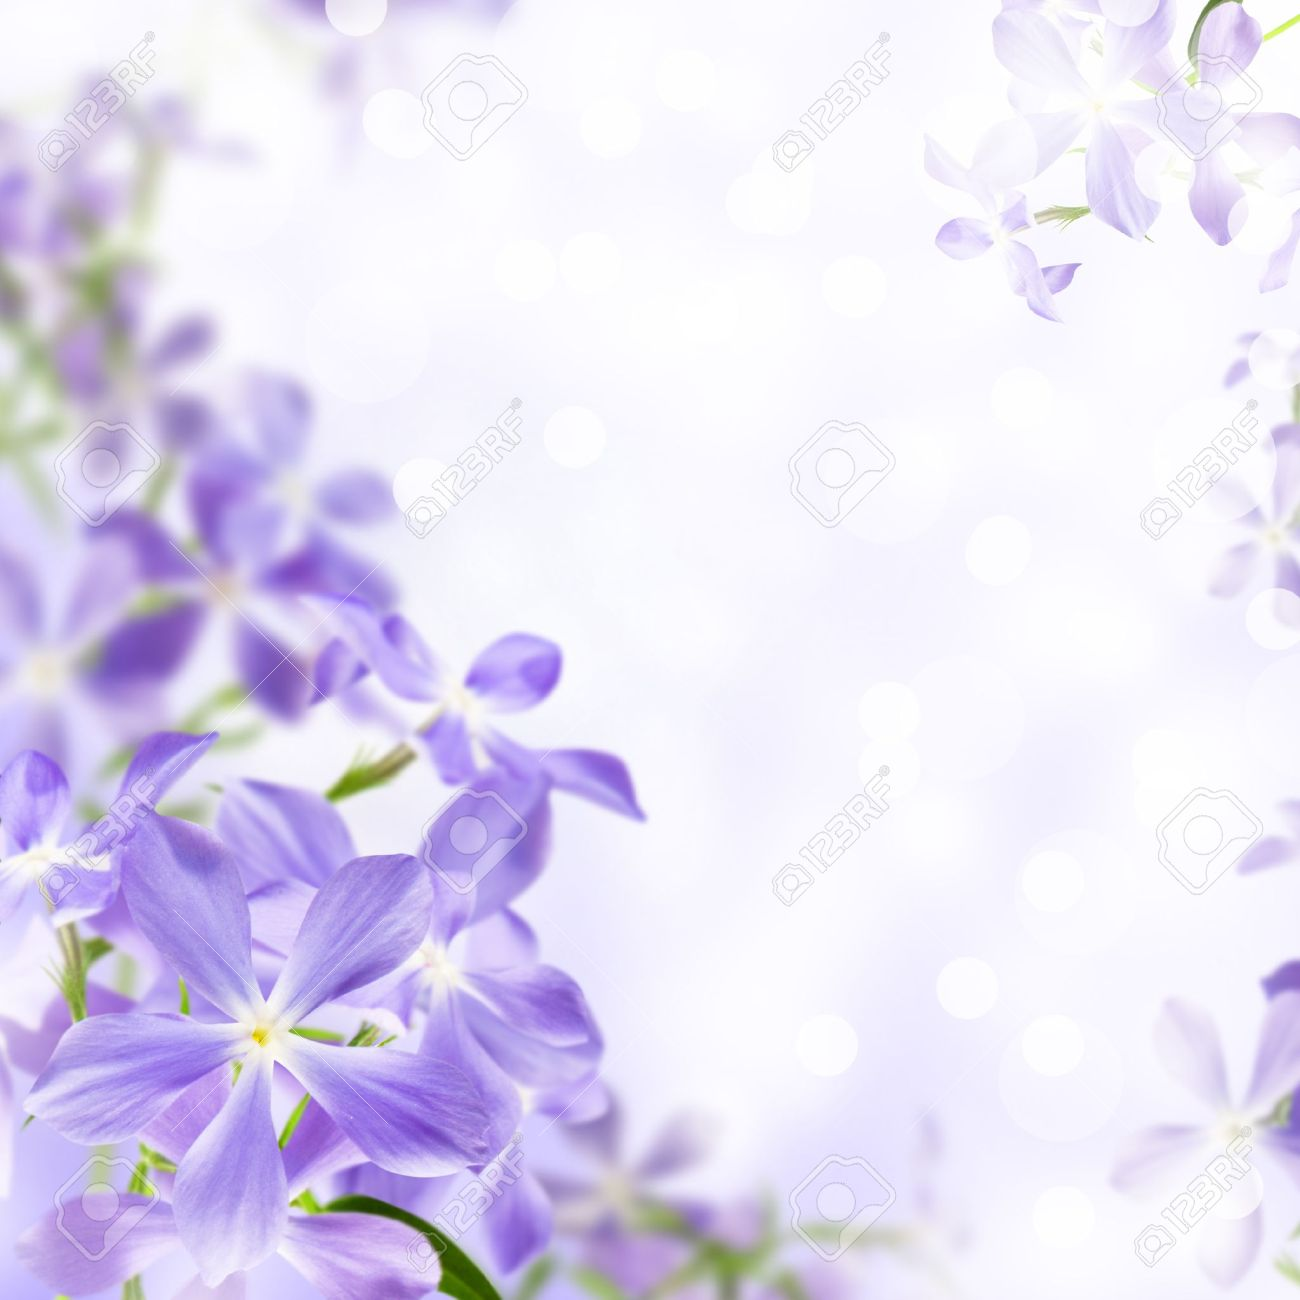 Wild Flowers Blue Blooming On Violet Background Stock Photo Picture And Royalty Free Image Image 9636579